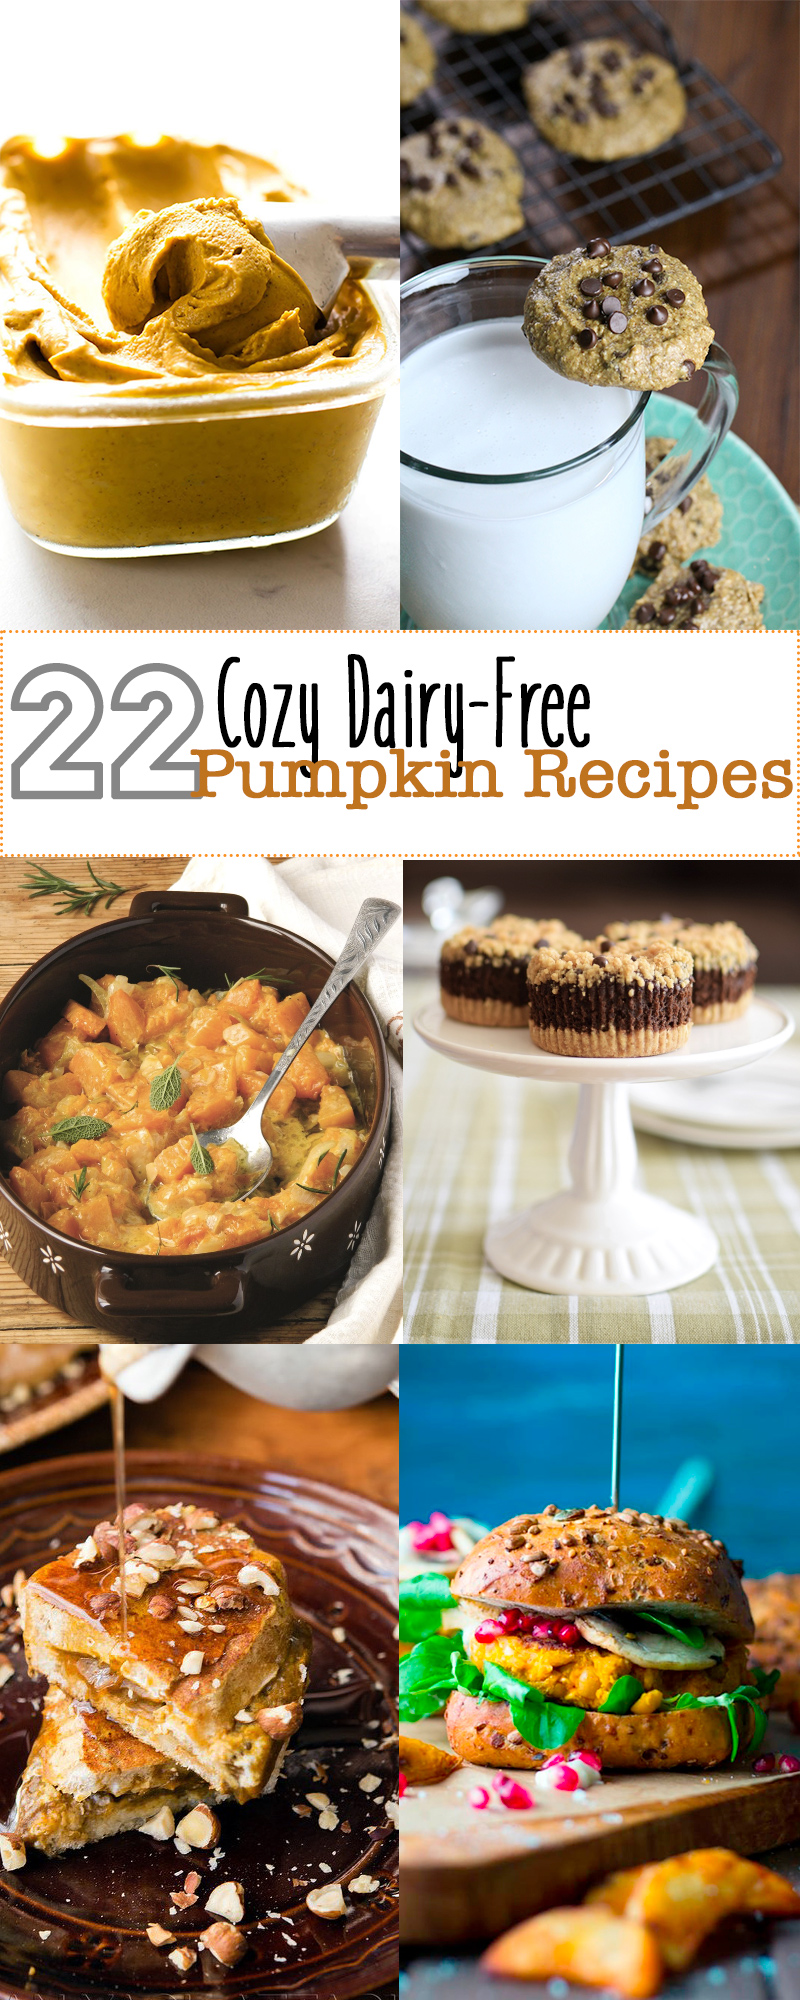 22 Dairy-Free Pumpkin Recipes - sweet, savory, vegan, and gluten-free options.